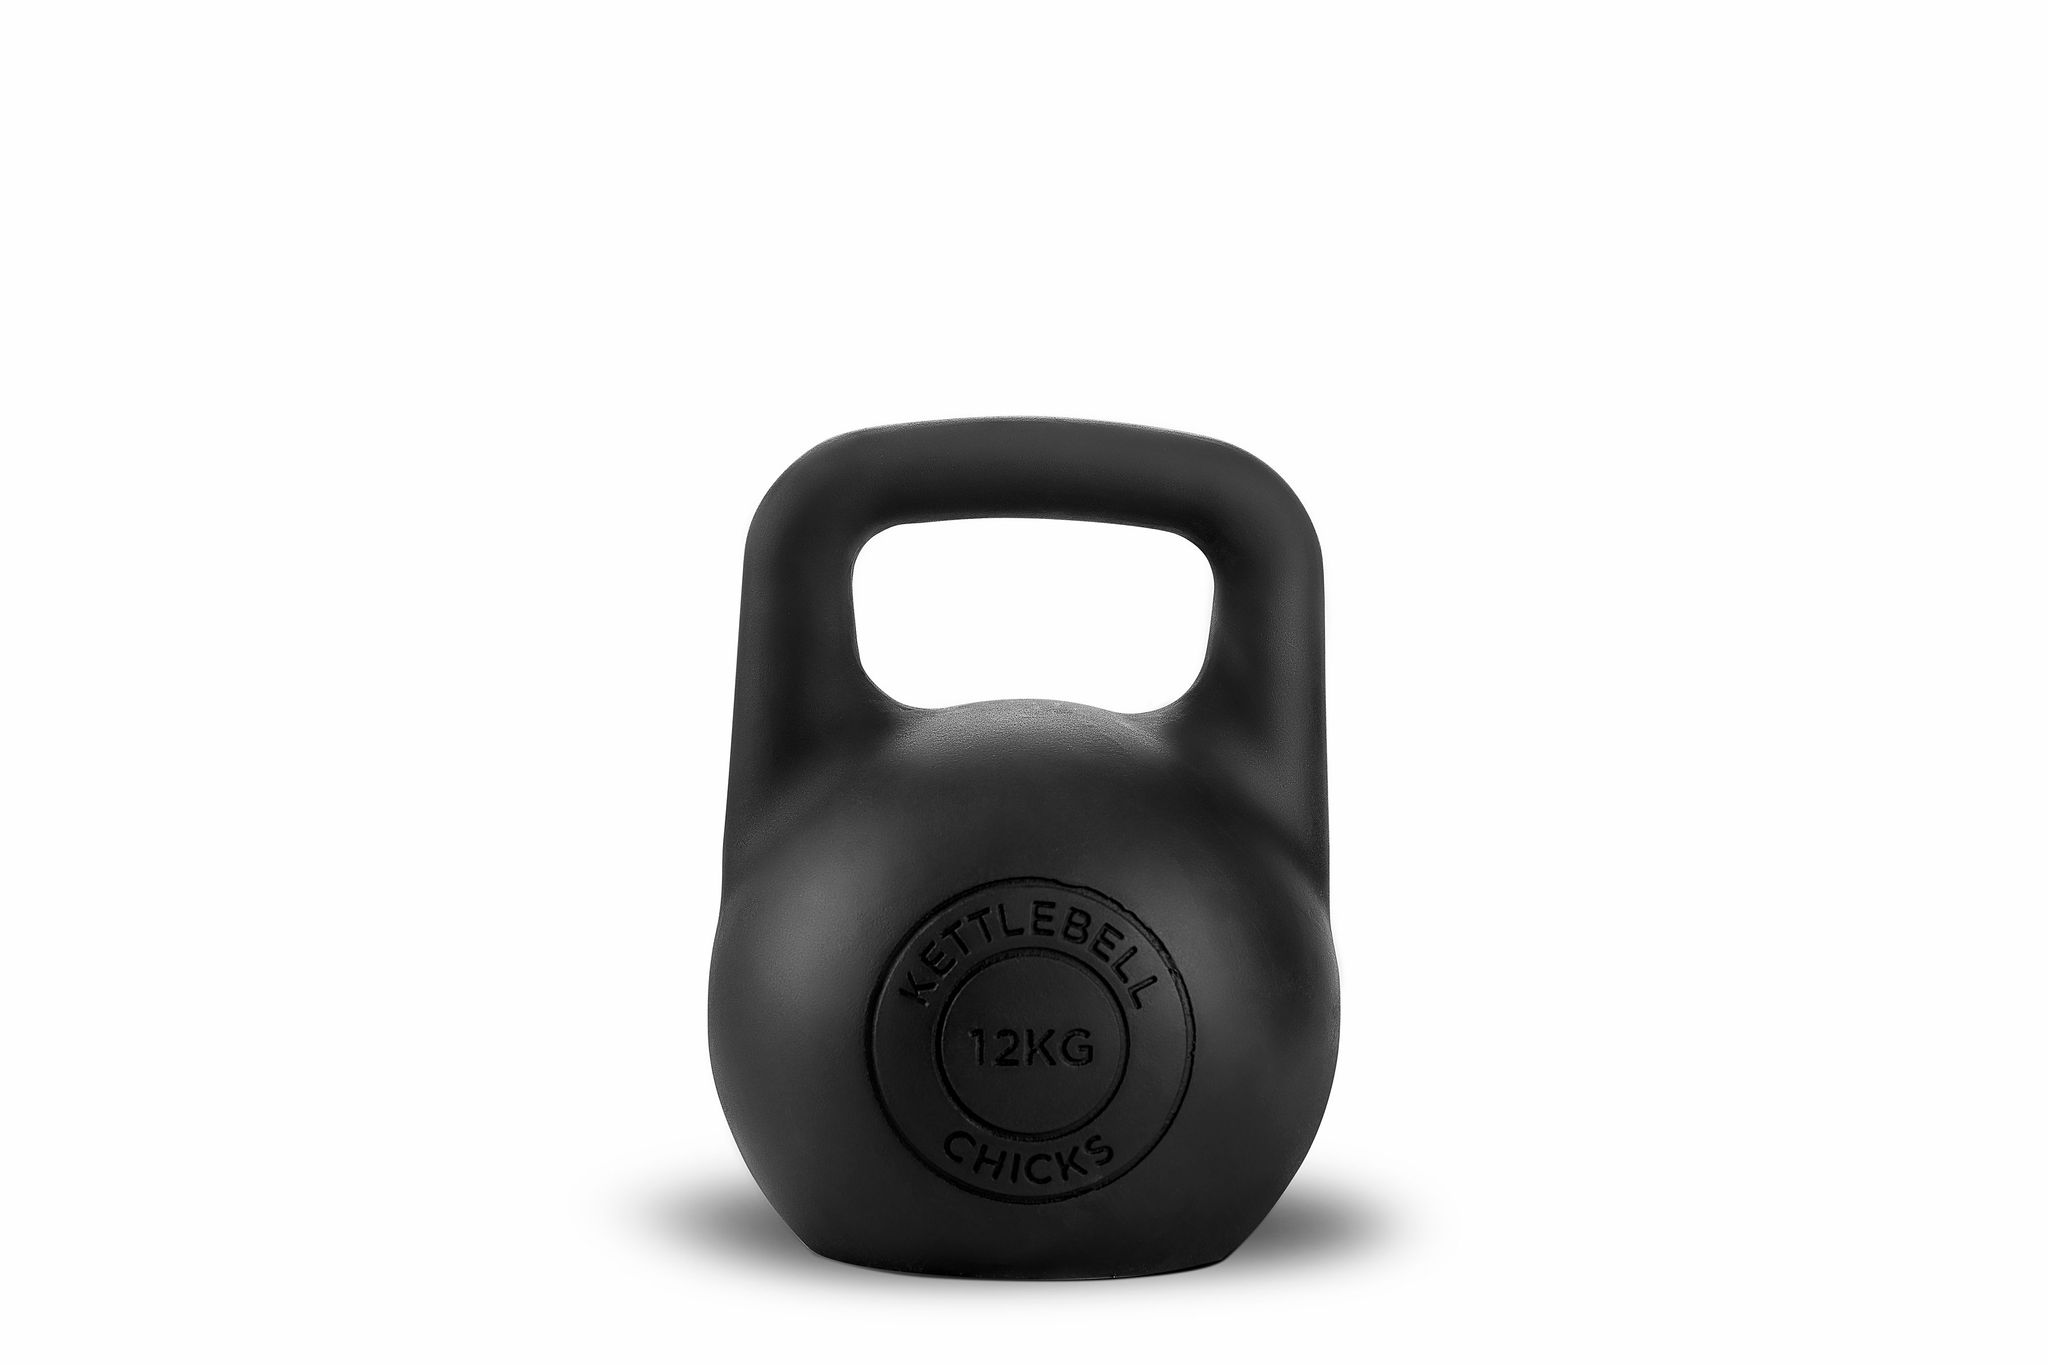 Get them while they last! Our exclusive, all black BLM kettlebell. Every purchase includes a donation to black lives matter.